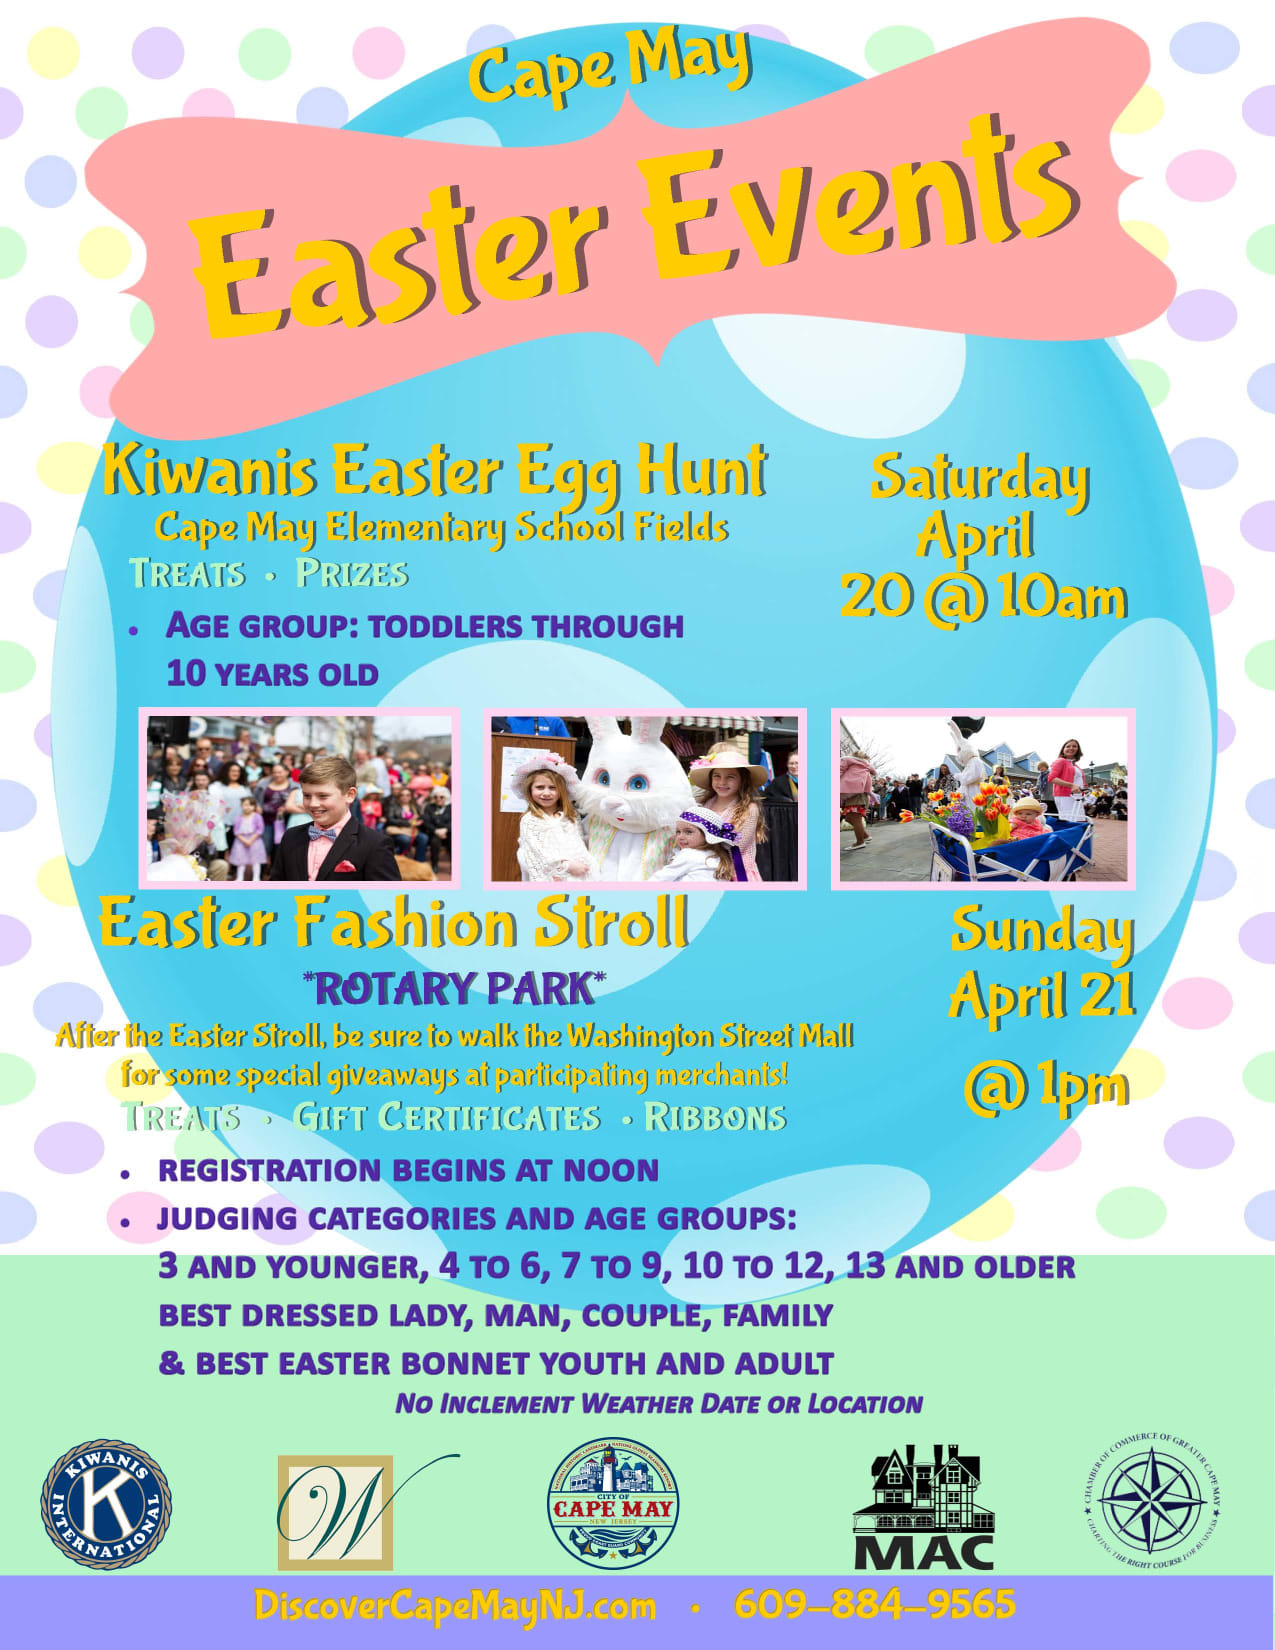 Easter-Events-Stroll-Poster-8.5-x-11-2019-w1275.jpg